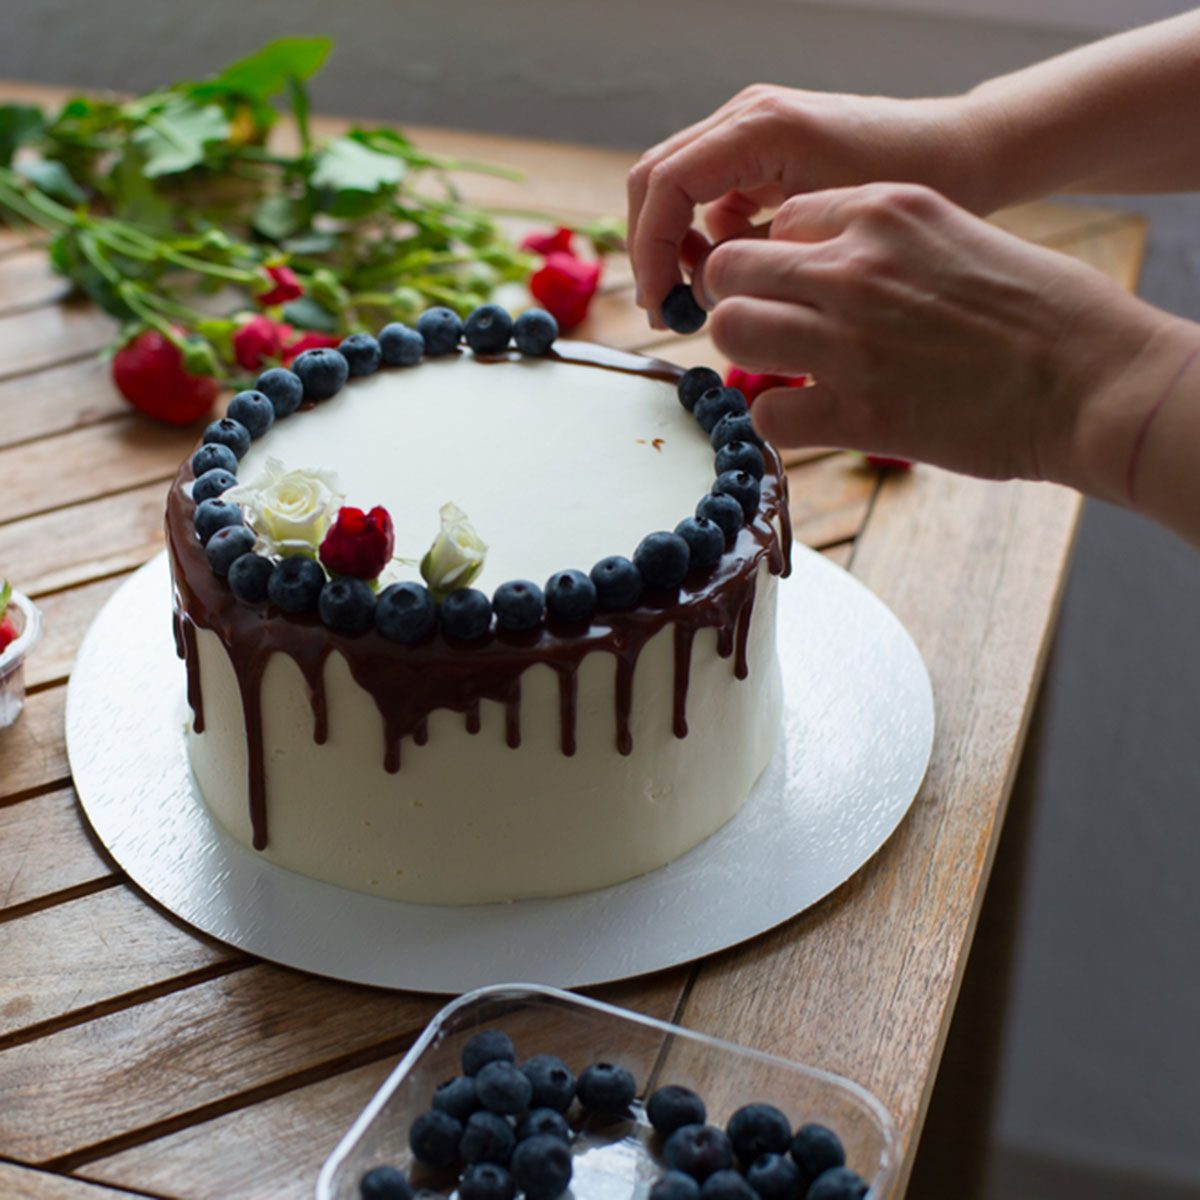 Baker adding blueberries to a cake; Shutterstock ID 645905908; Job (TFH, TOH, RD, BNB, CWM, CM): Taste of Home